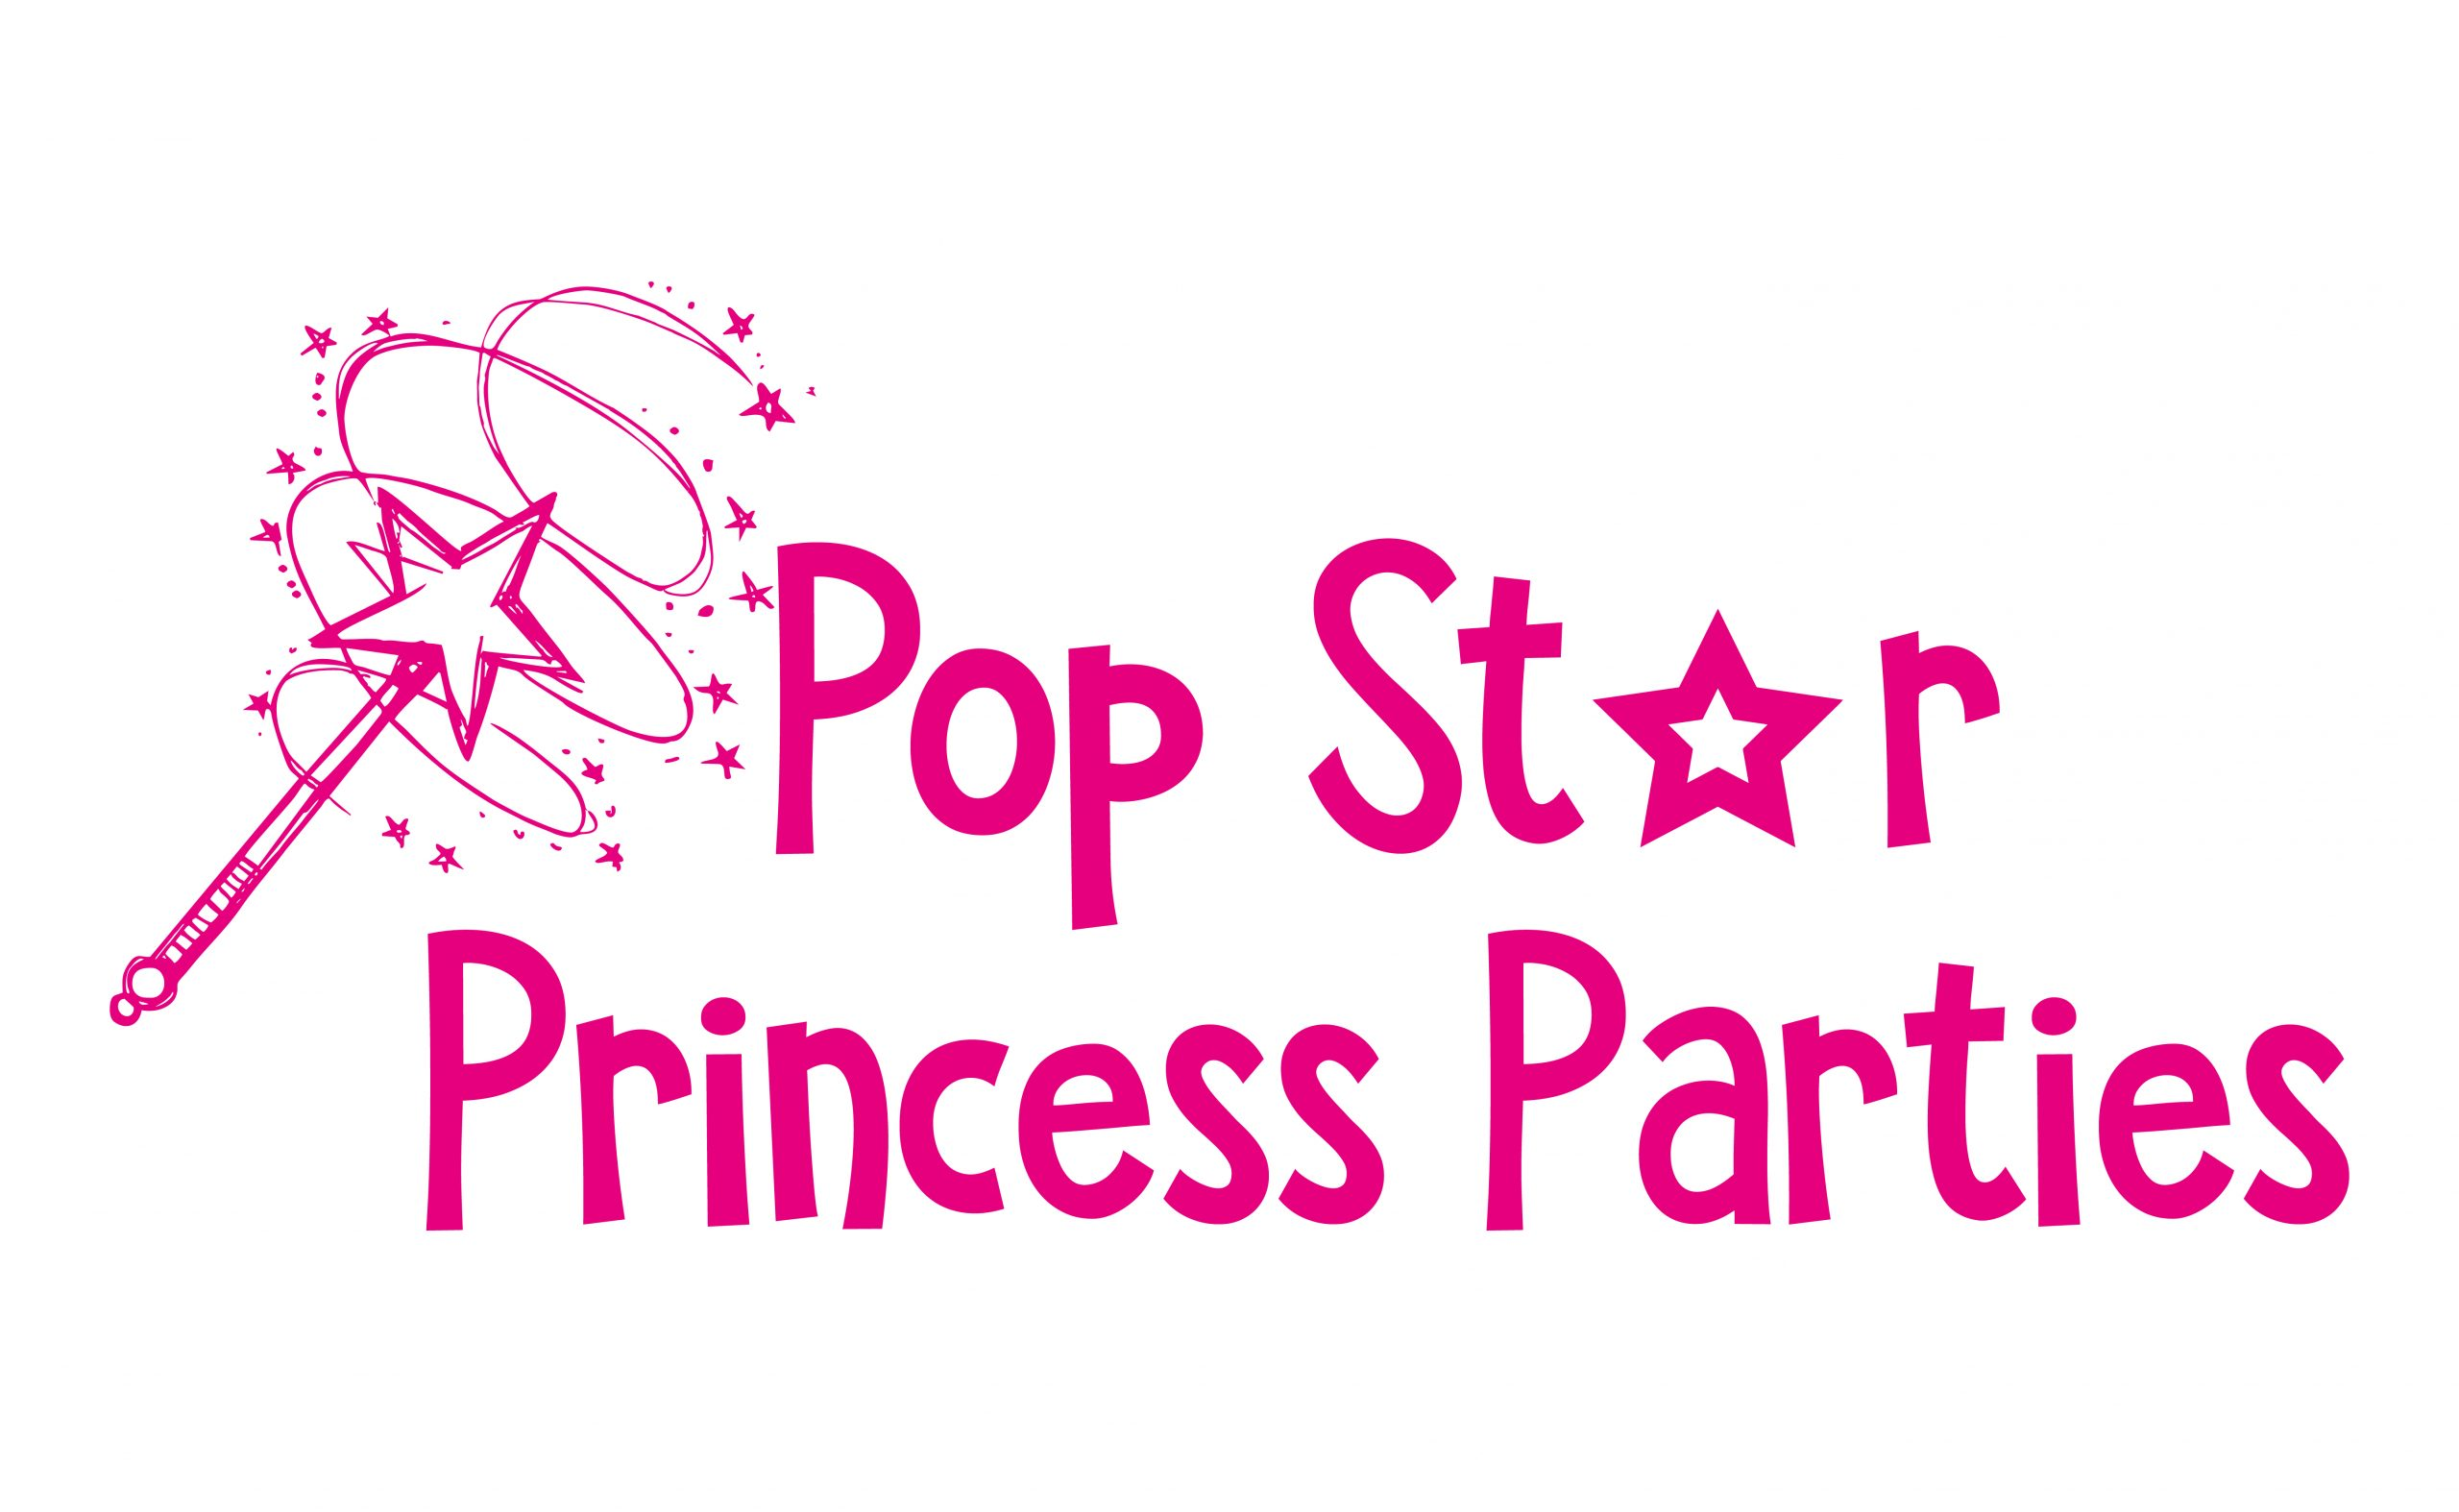 Pop Star Princess Parties